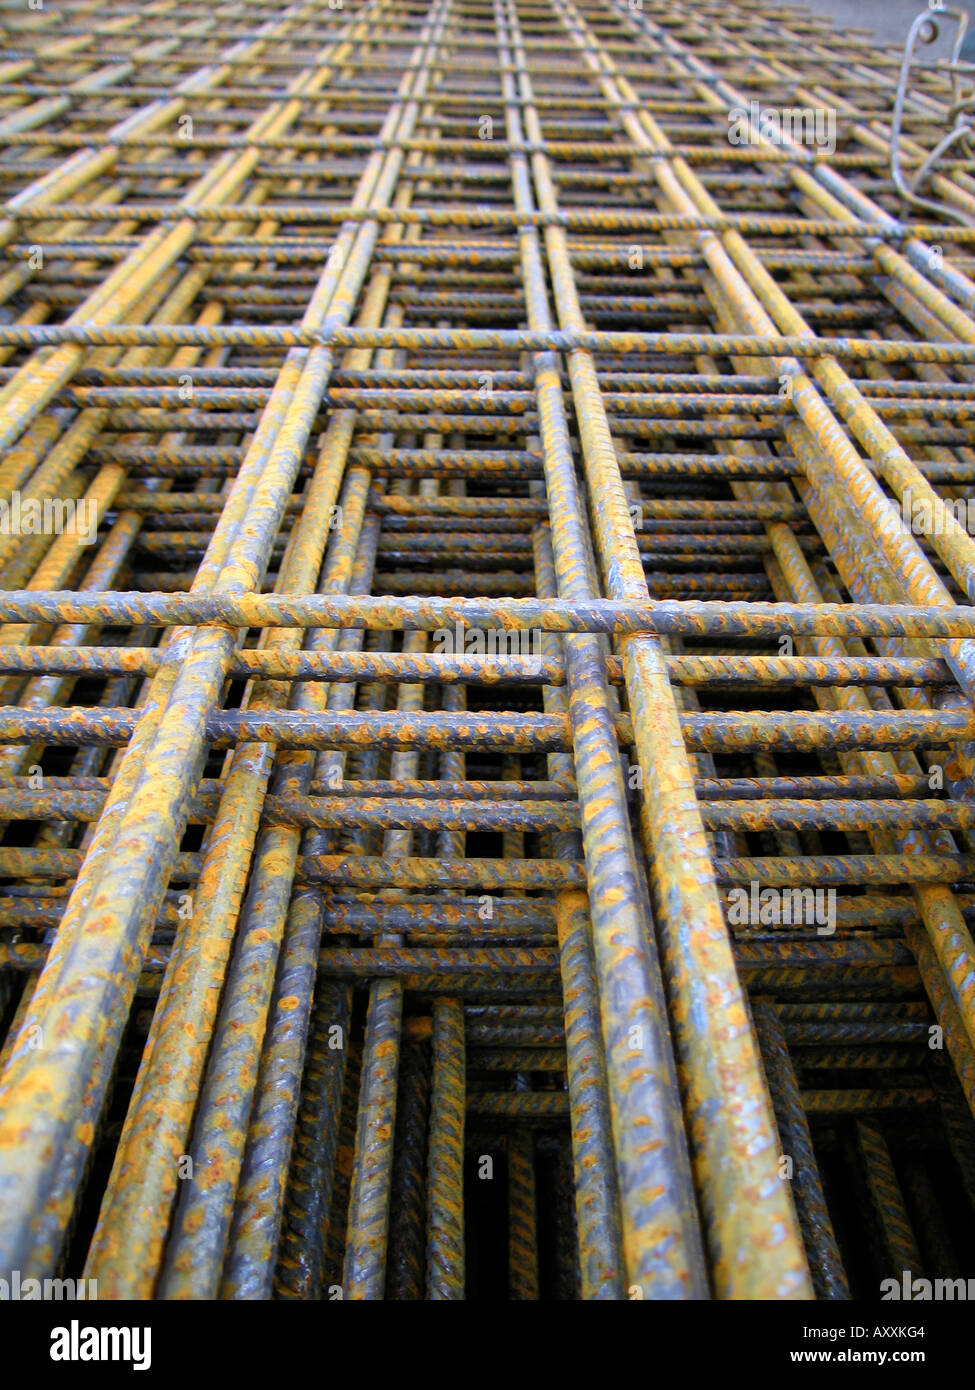 Steel reinforcement mesh - Stock Image